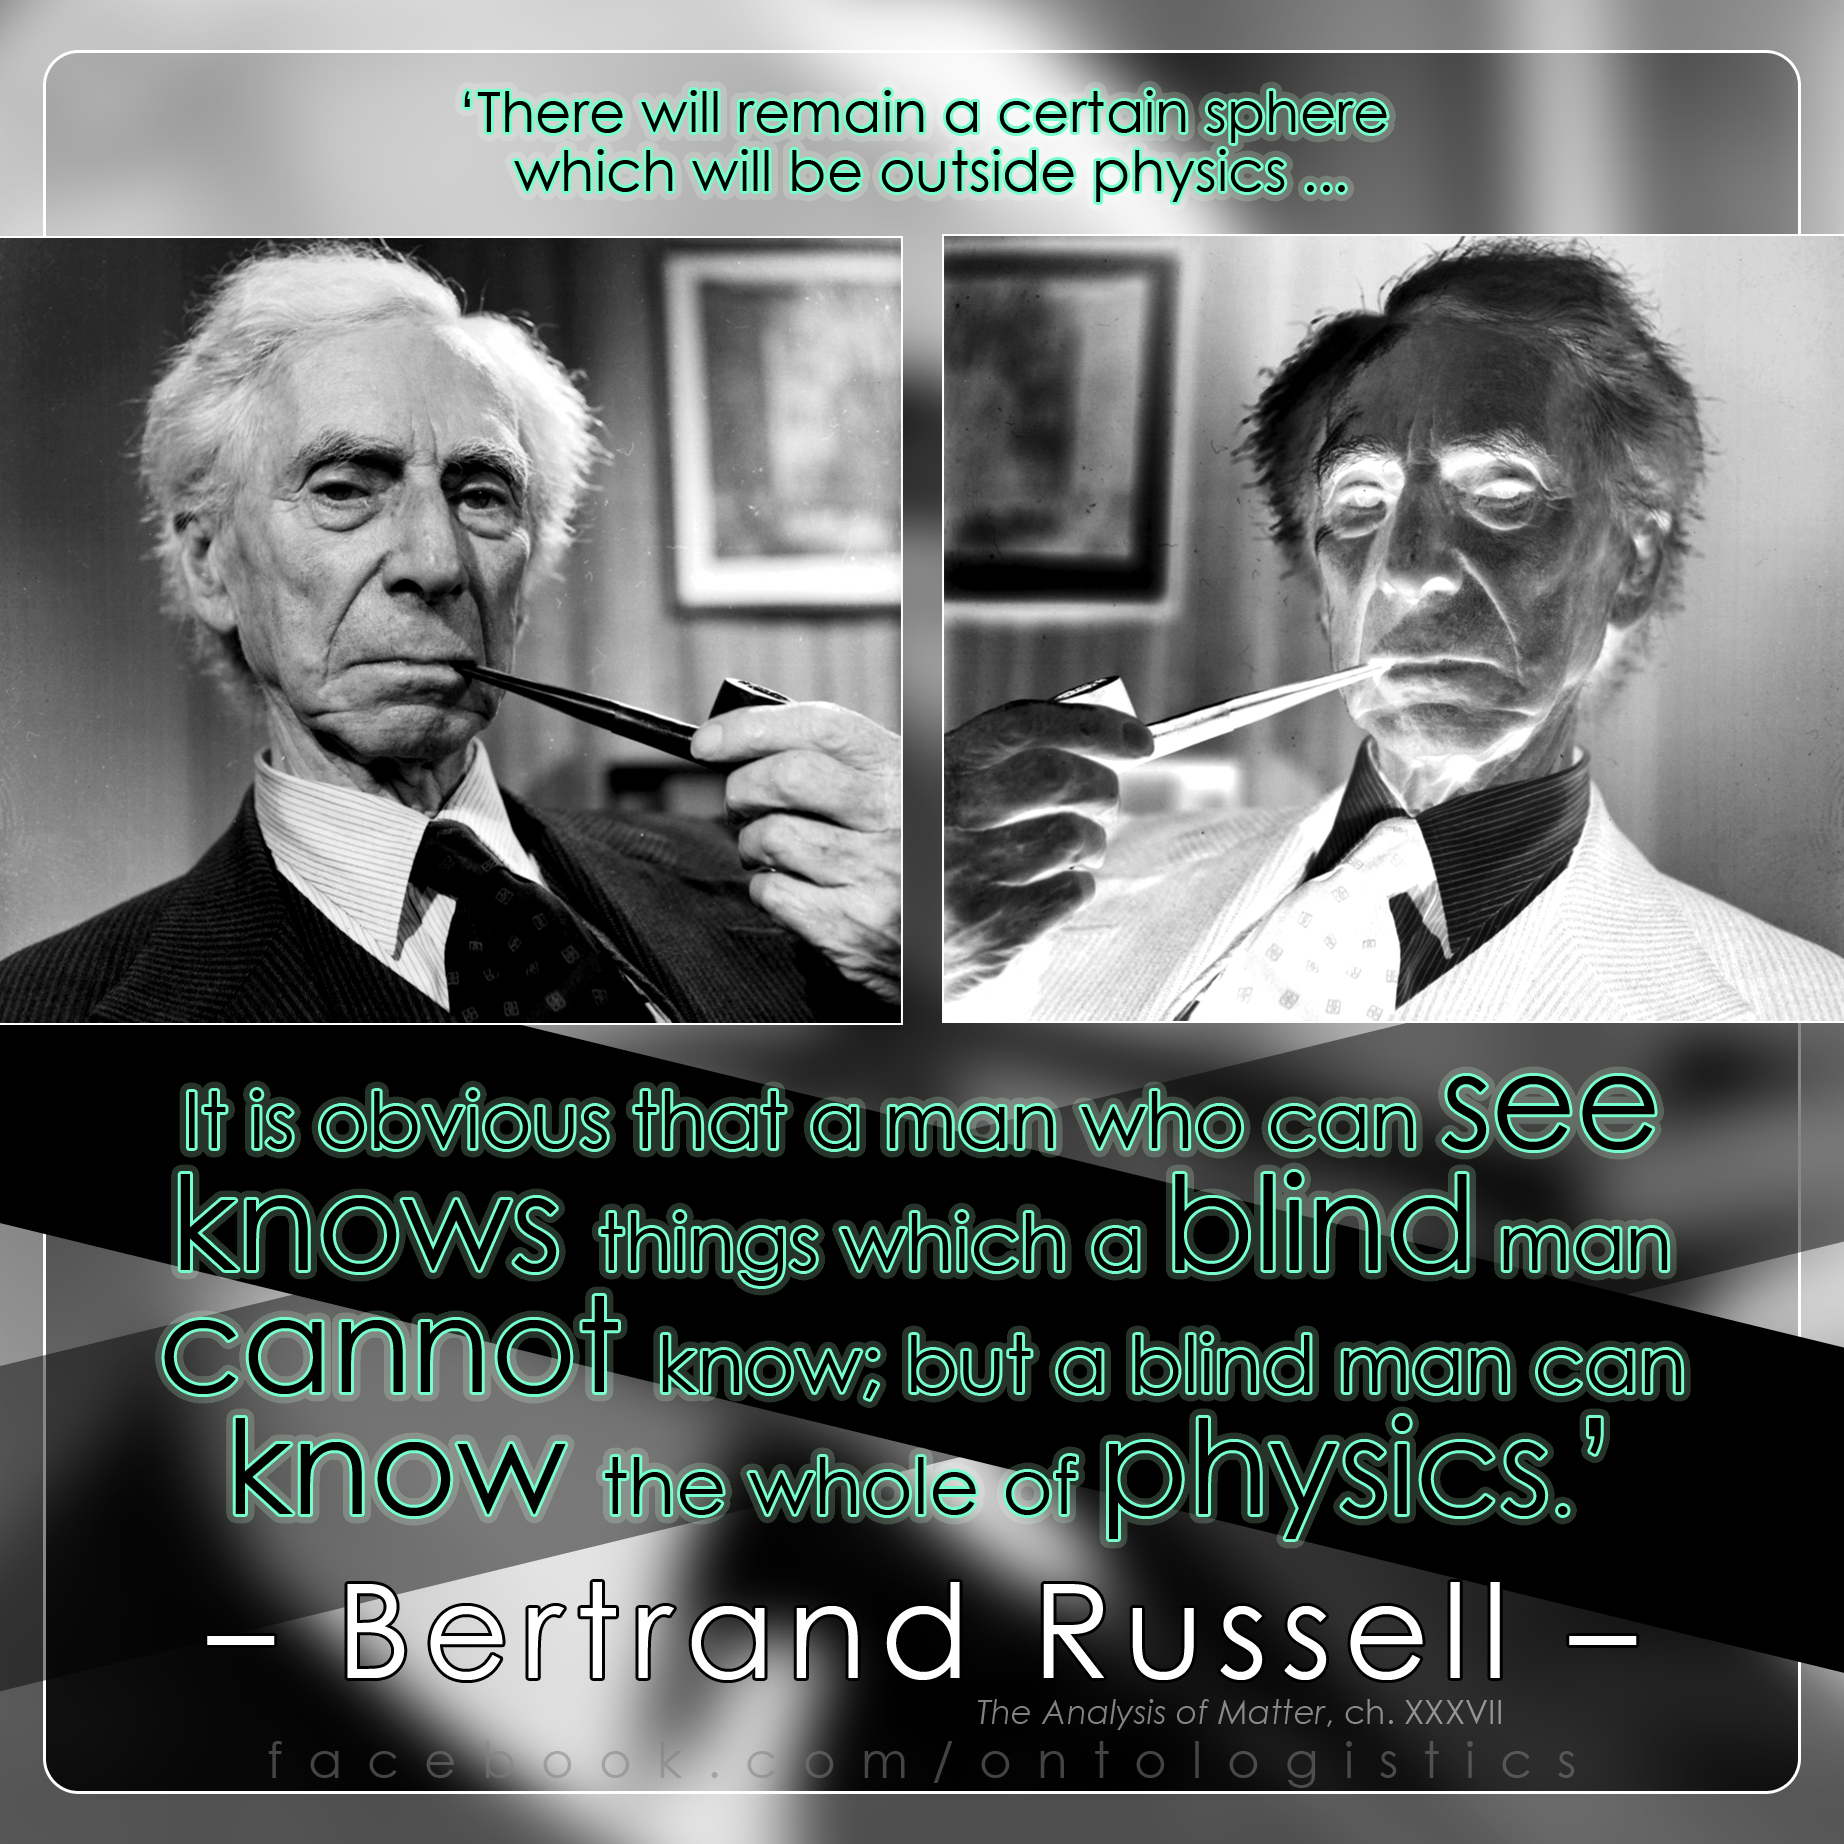 philosophical essays bertrand russell Bertrand arthur william russell (1872–1970) was a british philosopher, logician, essayist and social critic best known for his work in mathematical logic and analytic philosophy.